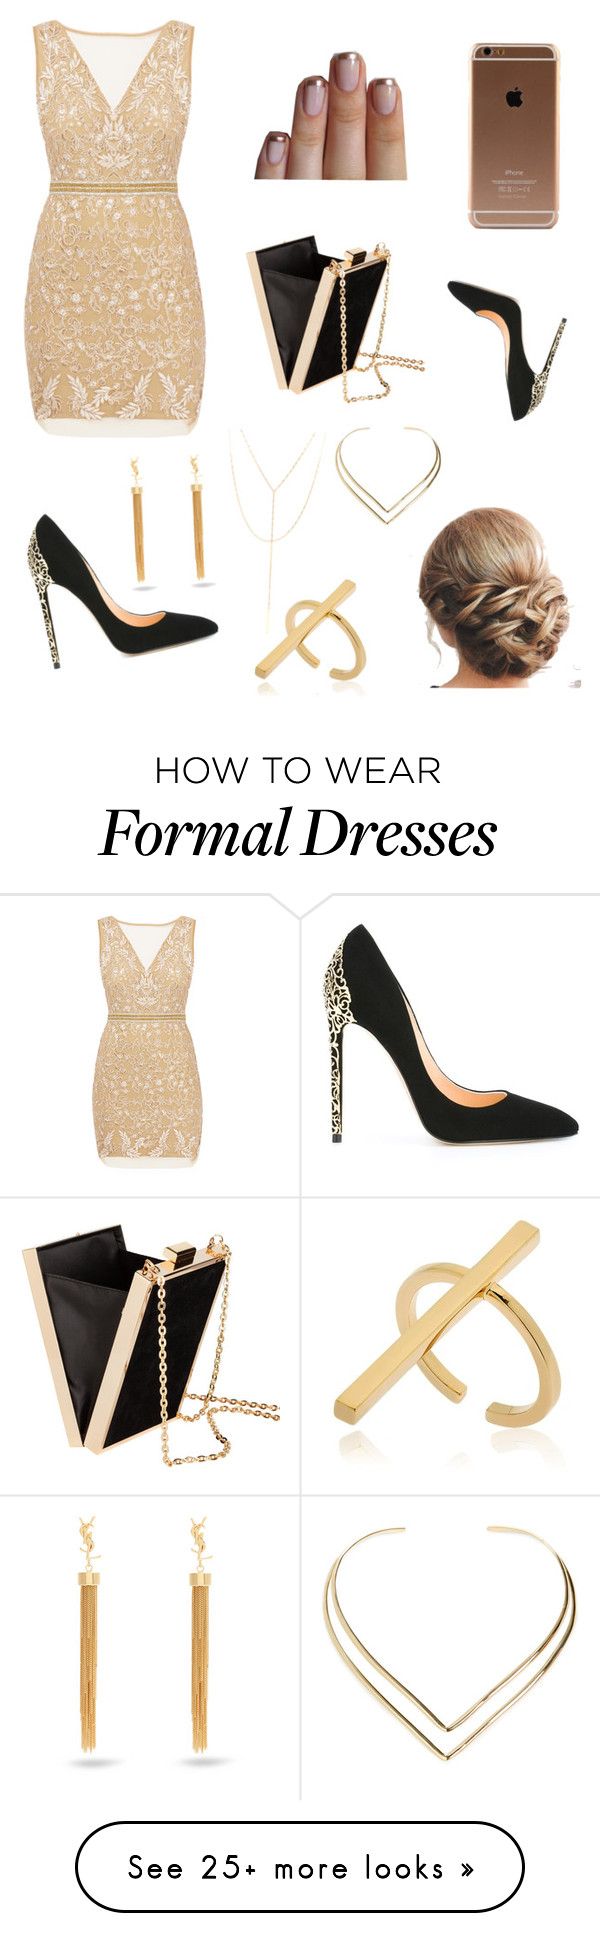 """""""Gold"""" by roli17 on Polyvore featuring Nicole Miller, Cerasella Milano, H&M, Schield Collection, Yves Saint Laurent, South Moon Under and Natalie B"""